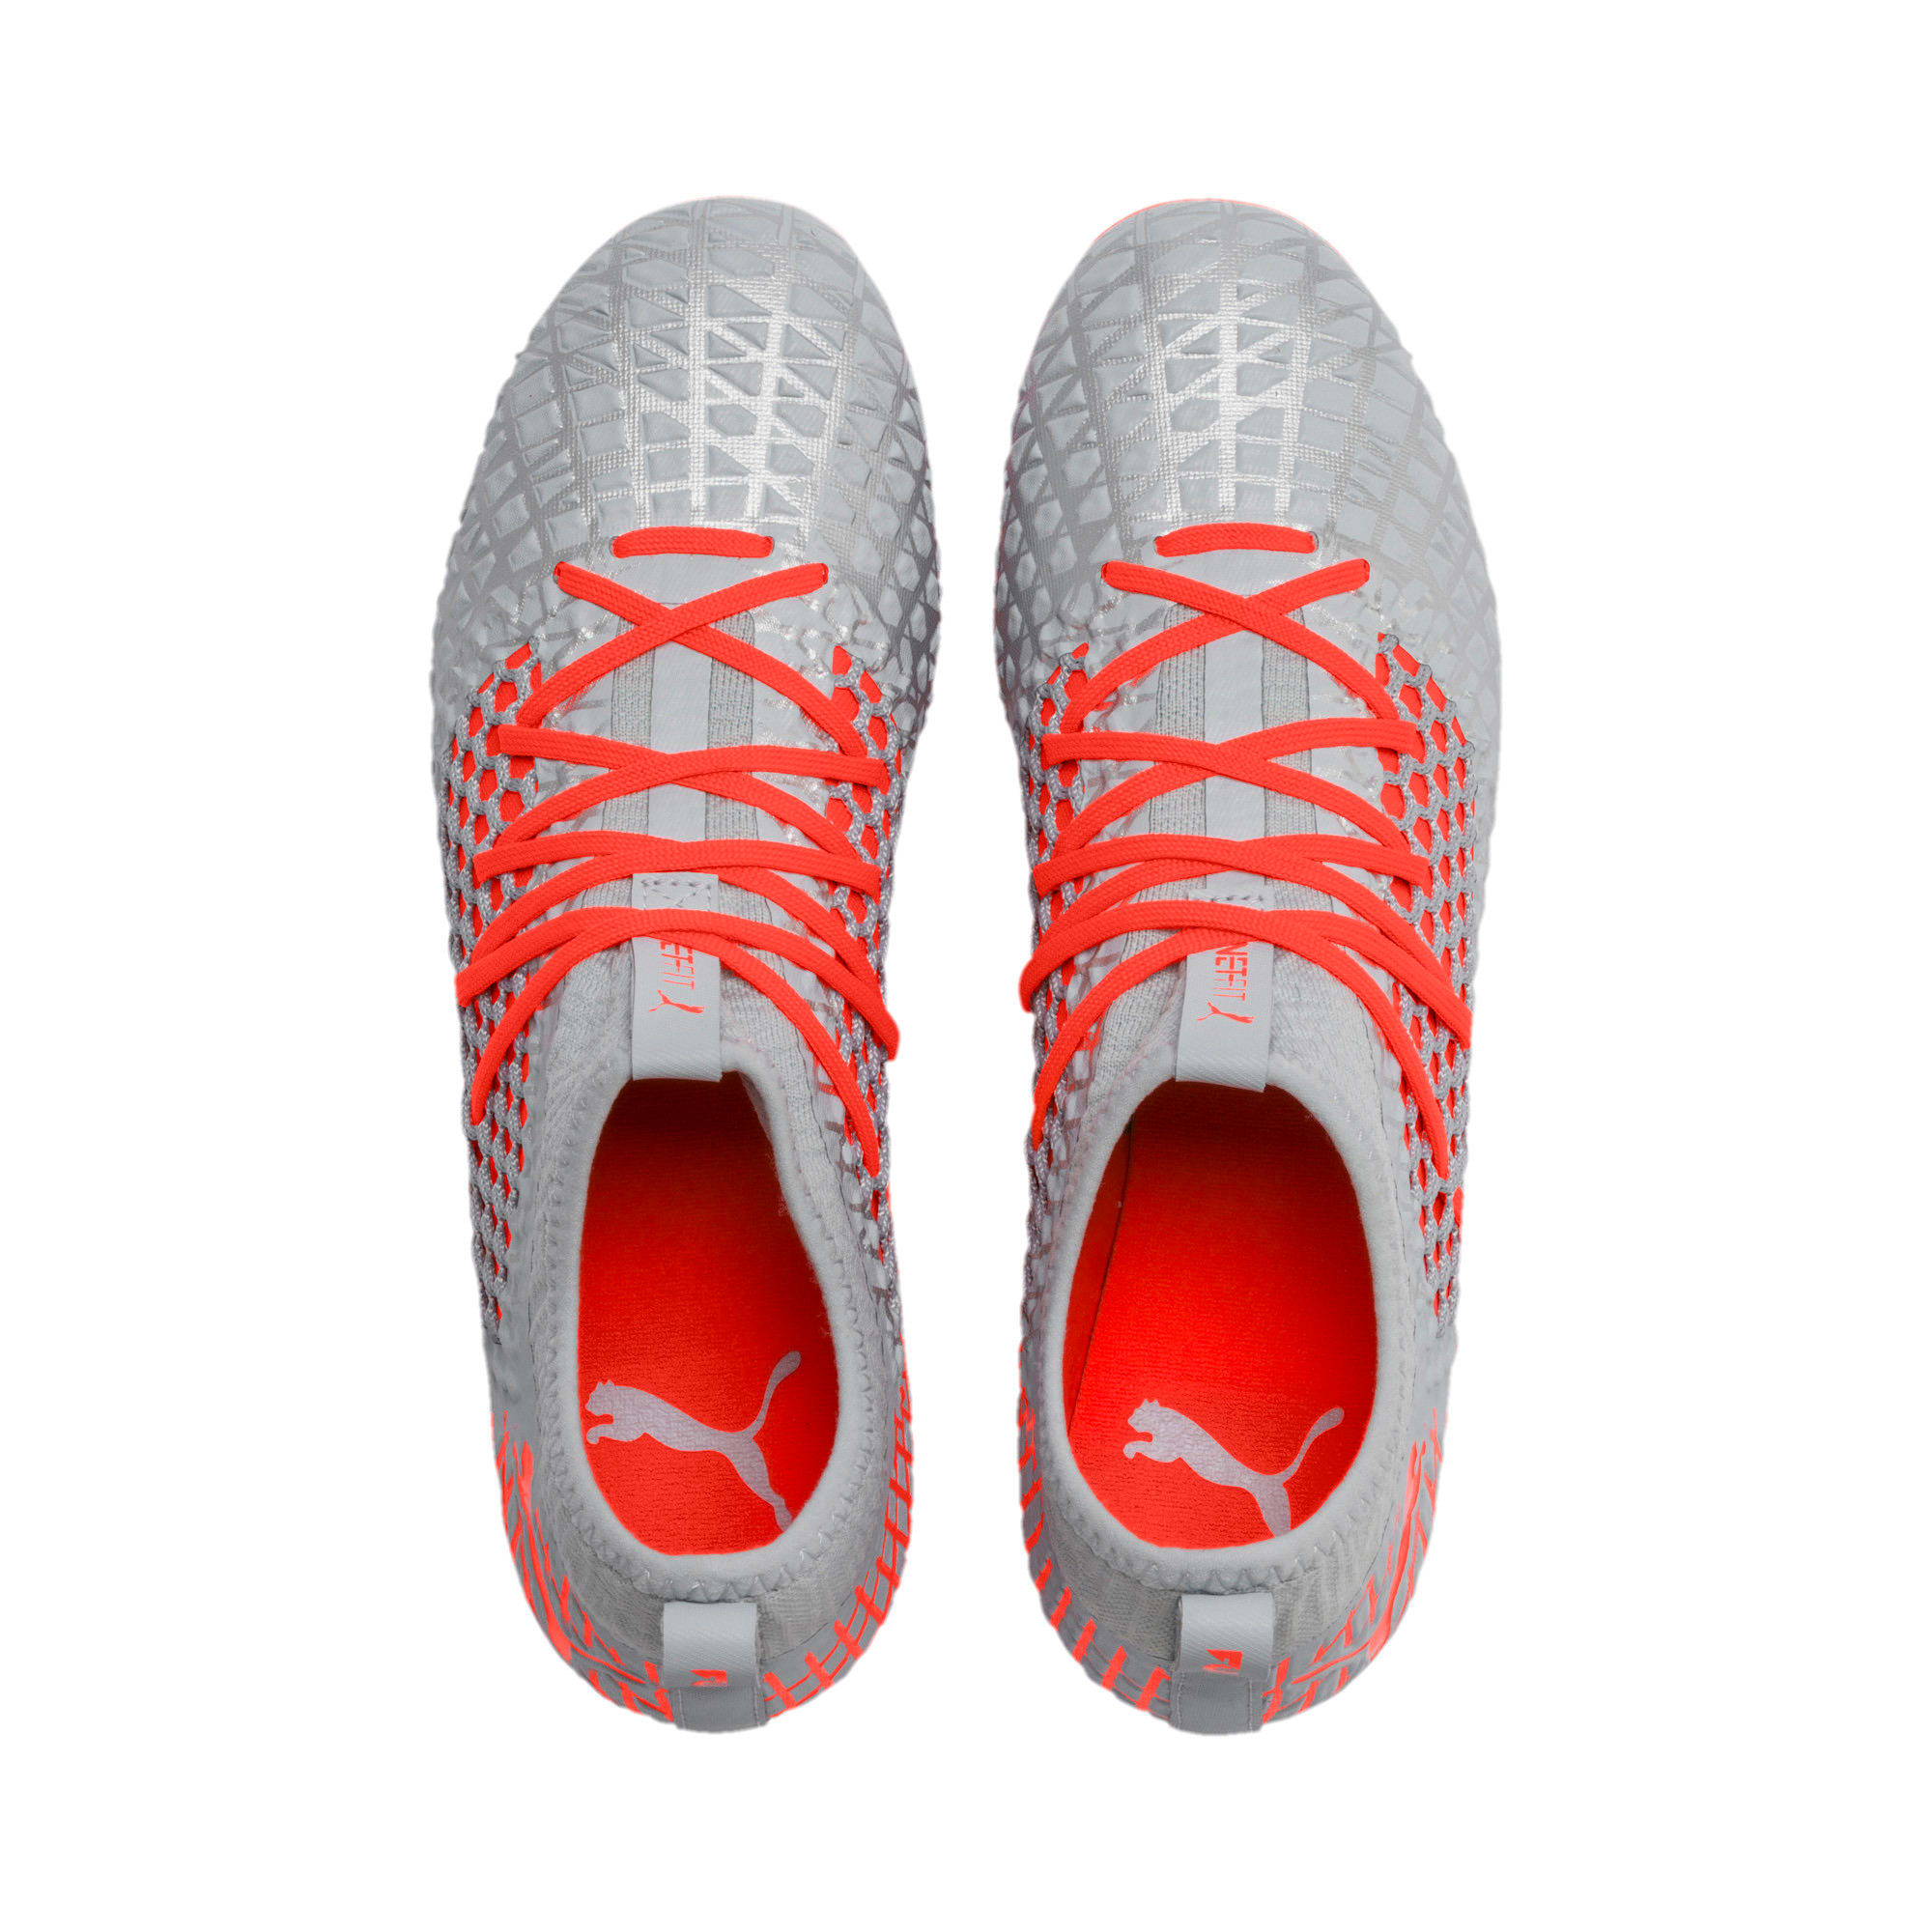 Thumbnail 7 of FUTURE 4.3 NETFIT FG/AG Men's Football Boots, Glacial Blue-Nrgy Red, medium